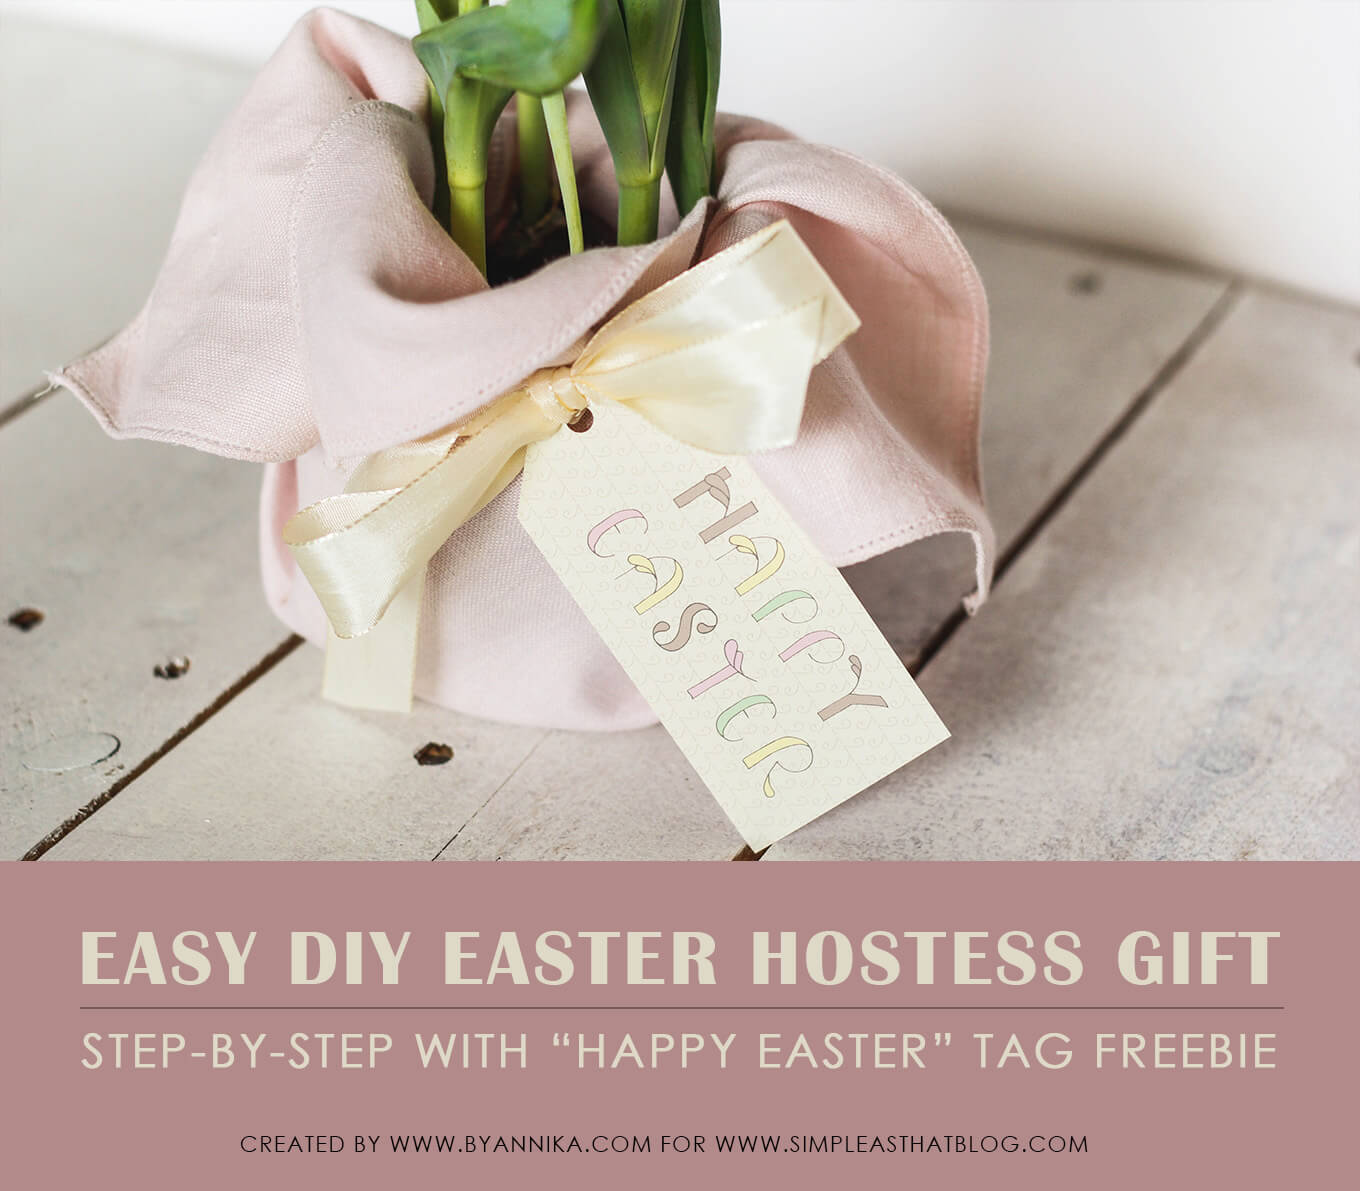 How to create a super quick last minute easter hostess gift this little gift consists basically of dressing up a flower in a pot with some fabric and adding a cute tag but one of the criteria for being able to negle Images